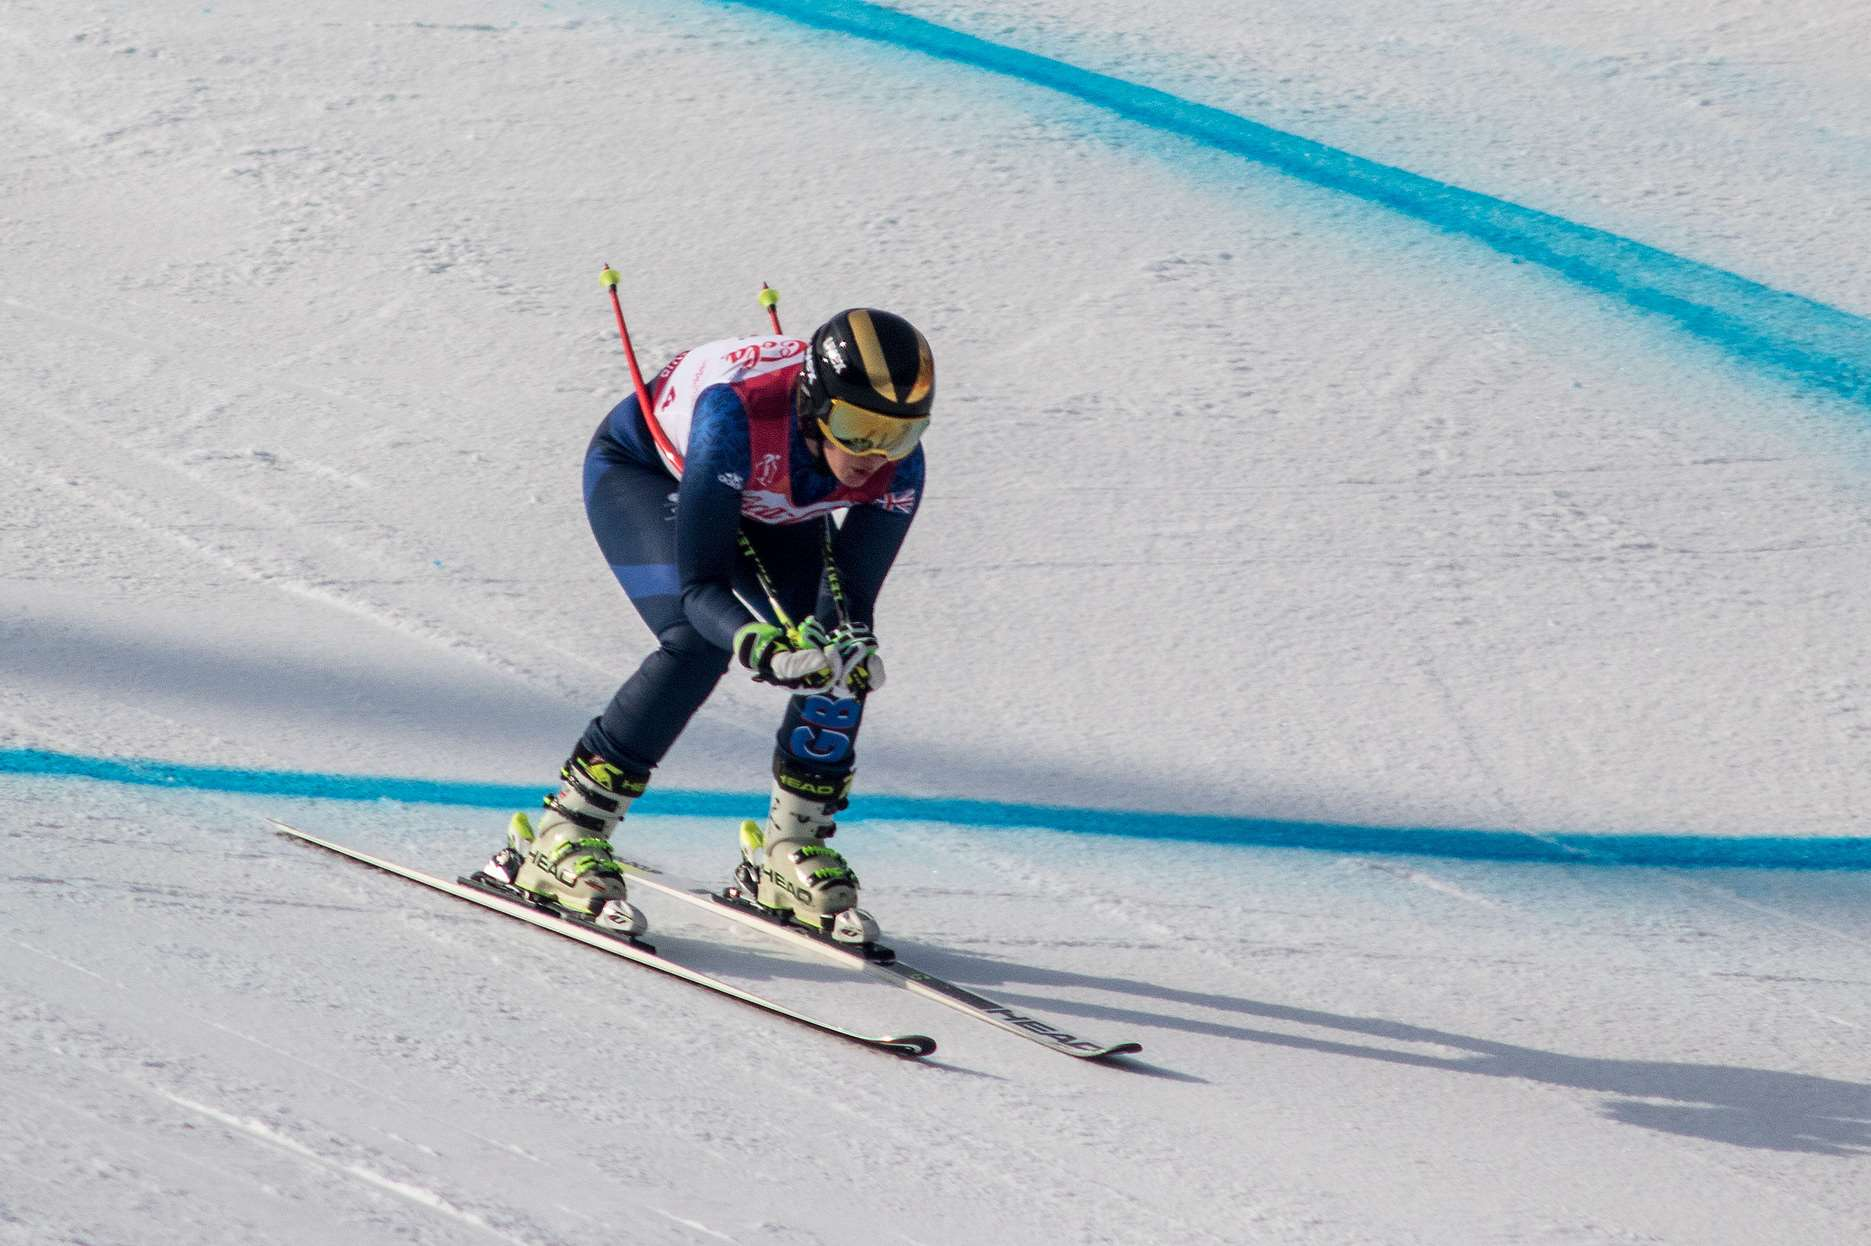 Millie Knight in action at the Winter Paralympics